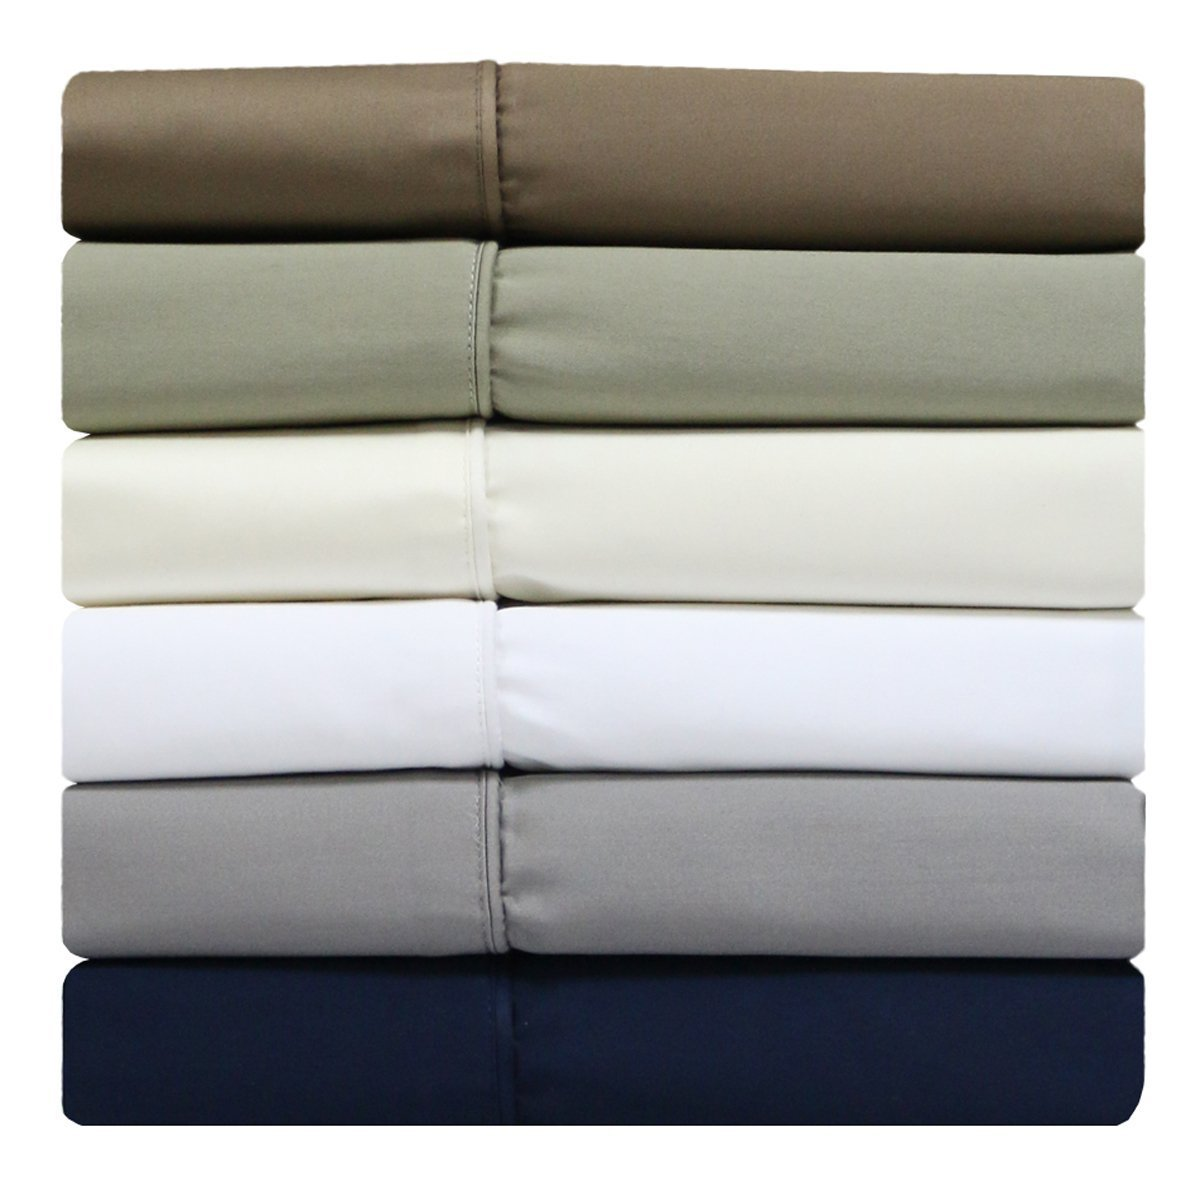 sheetsnthings 100% Cotton Split-Top-California King (Adjustable Cal King Bed Size Sheets) 300TC, Solid Taupe, Sateen Weave, Deep Pocket, 4PC Bed Sheet Set